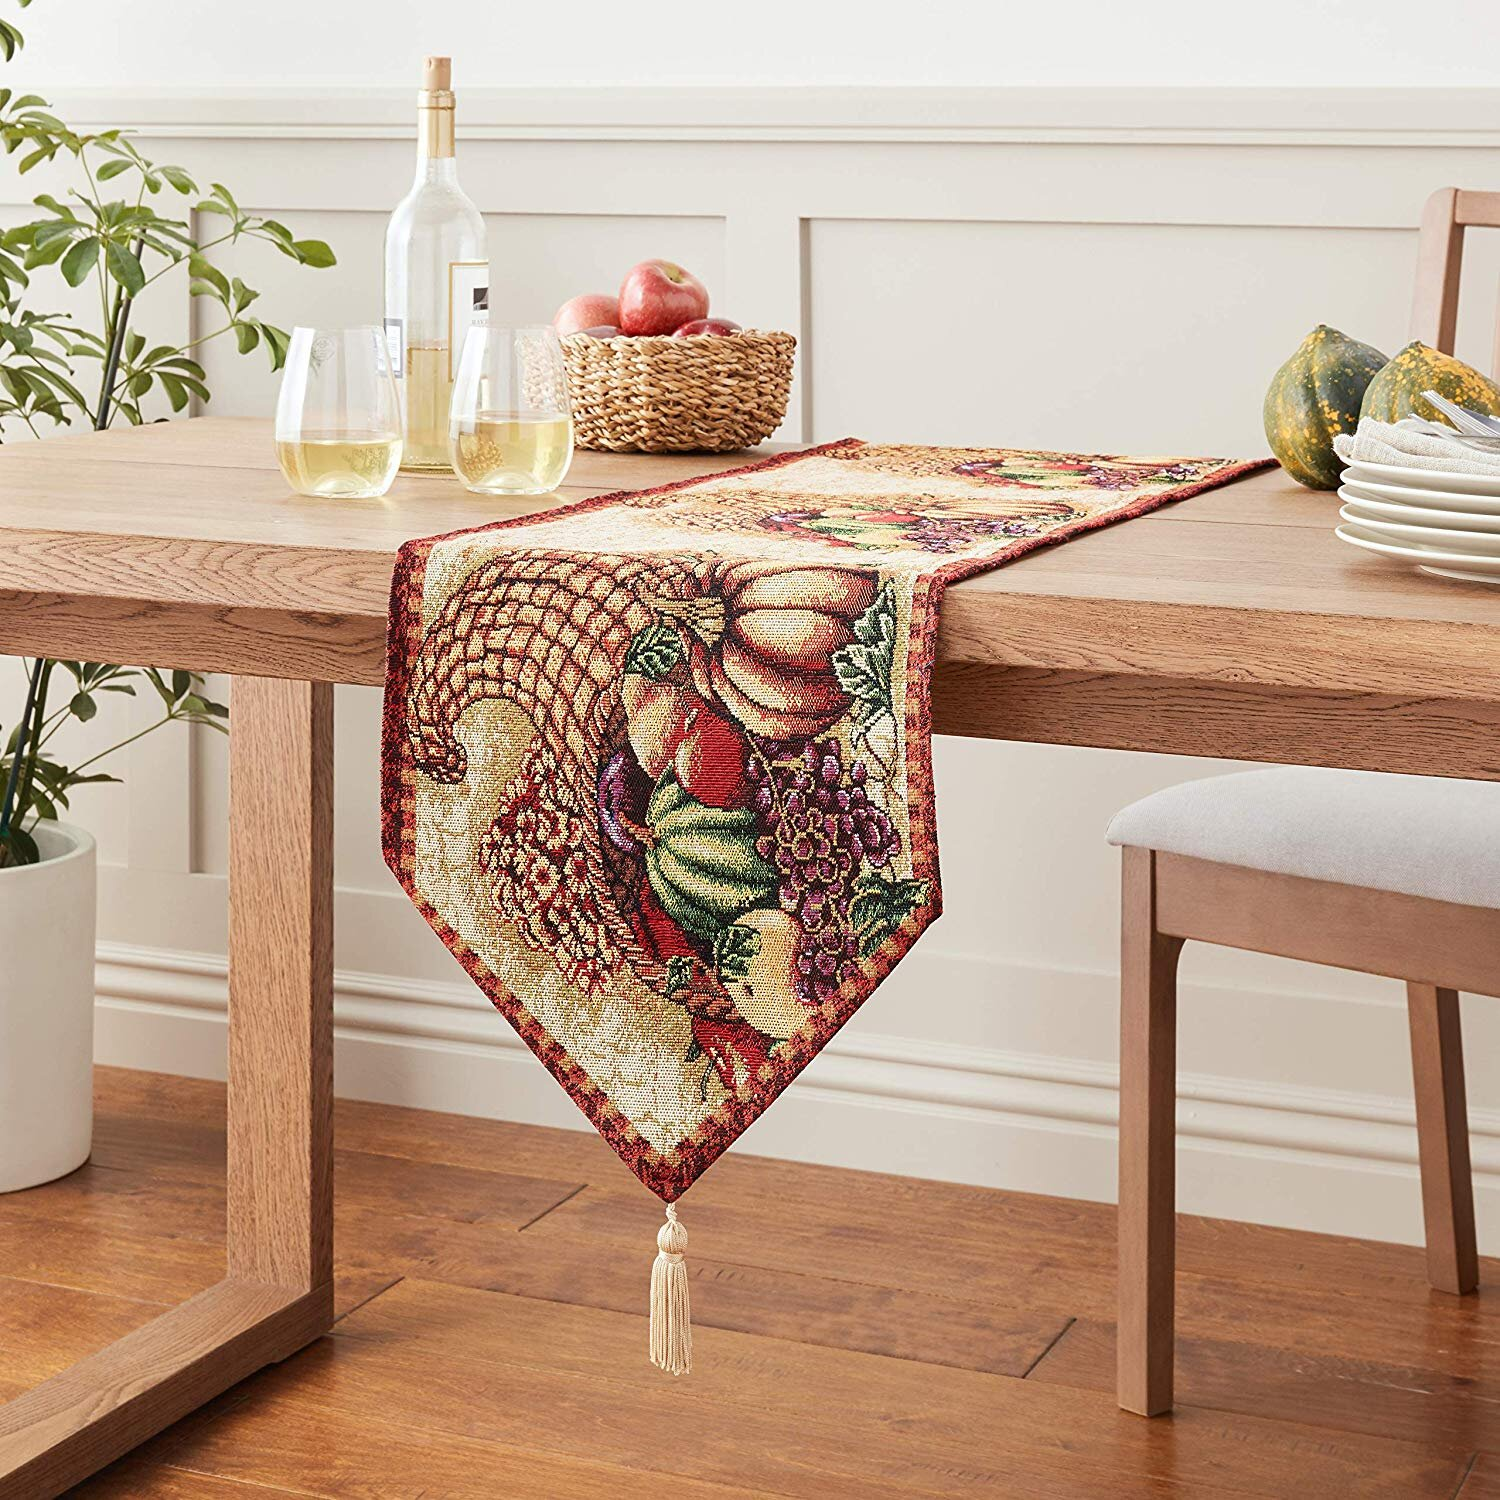 The Holiday Aisle Marcelino Cornucopia With Pumpkins And Fruit Table Runner Reviews Wayfair